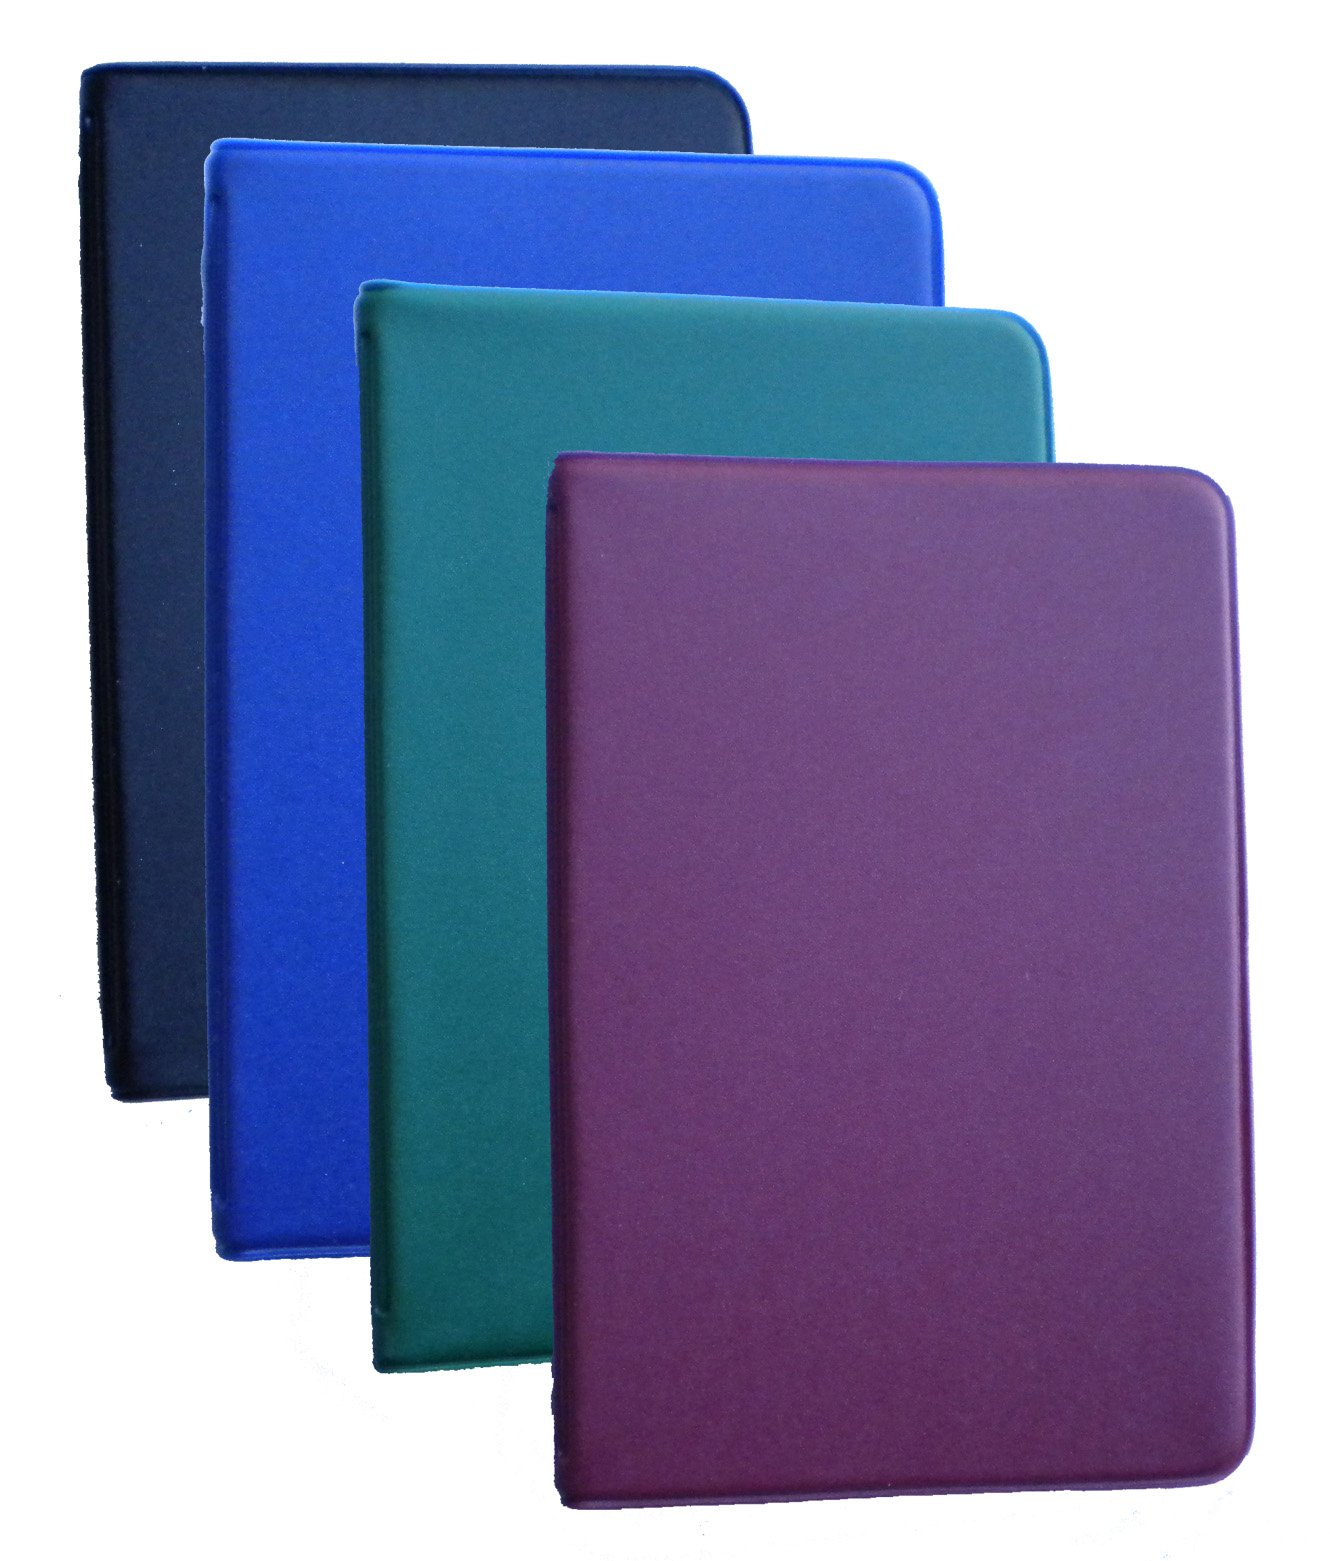 Mead (46000) Four Different Colored Mini 6-Ring Memo Books, Each Containing 3 x 5 inch Lined Paper by Mead